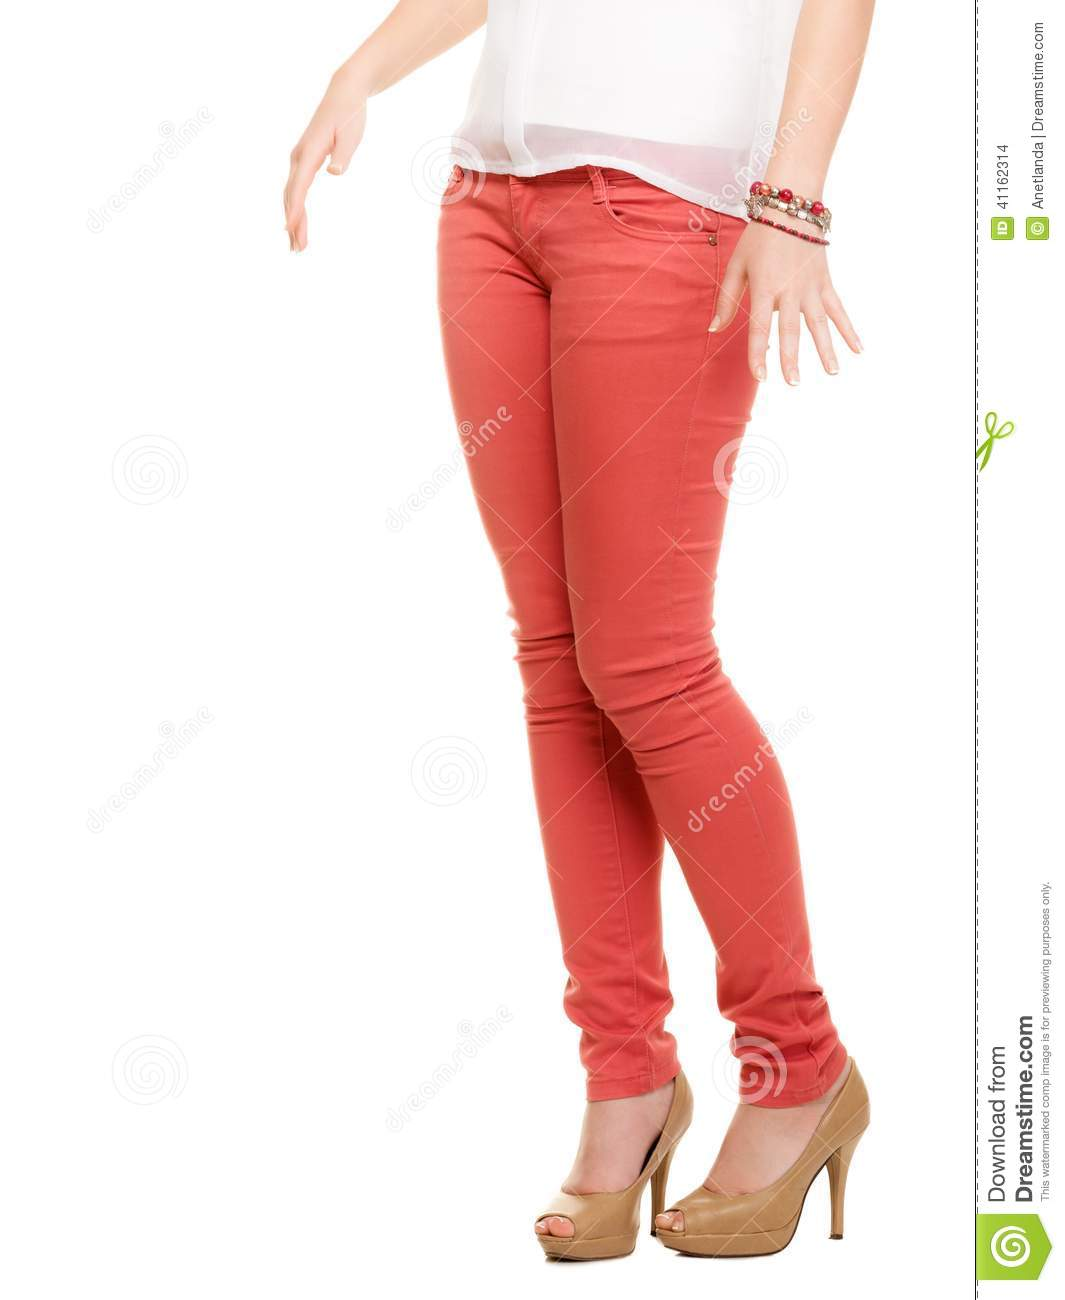 3a47a0a0a8b Closeup of female legs in red pants and beige high heels shoes boots  isolated on white.